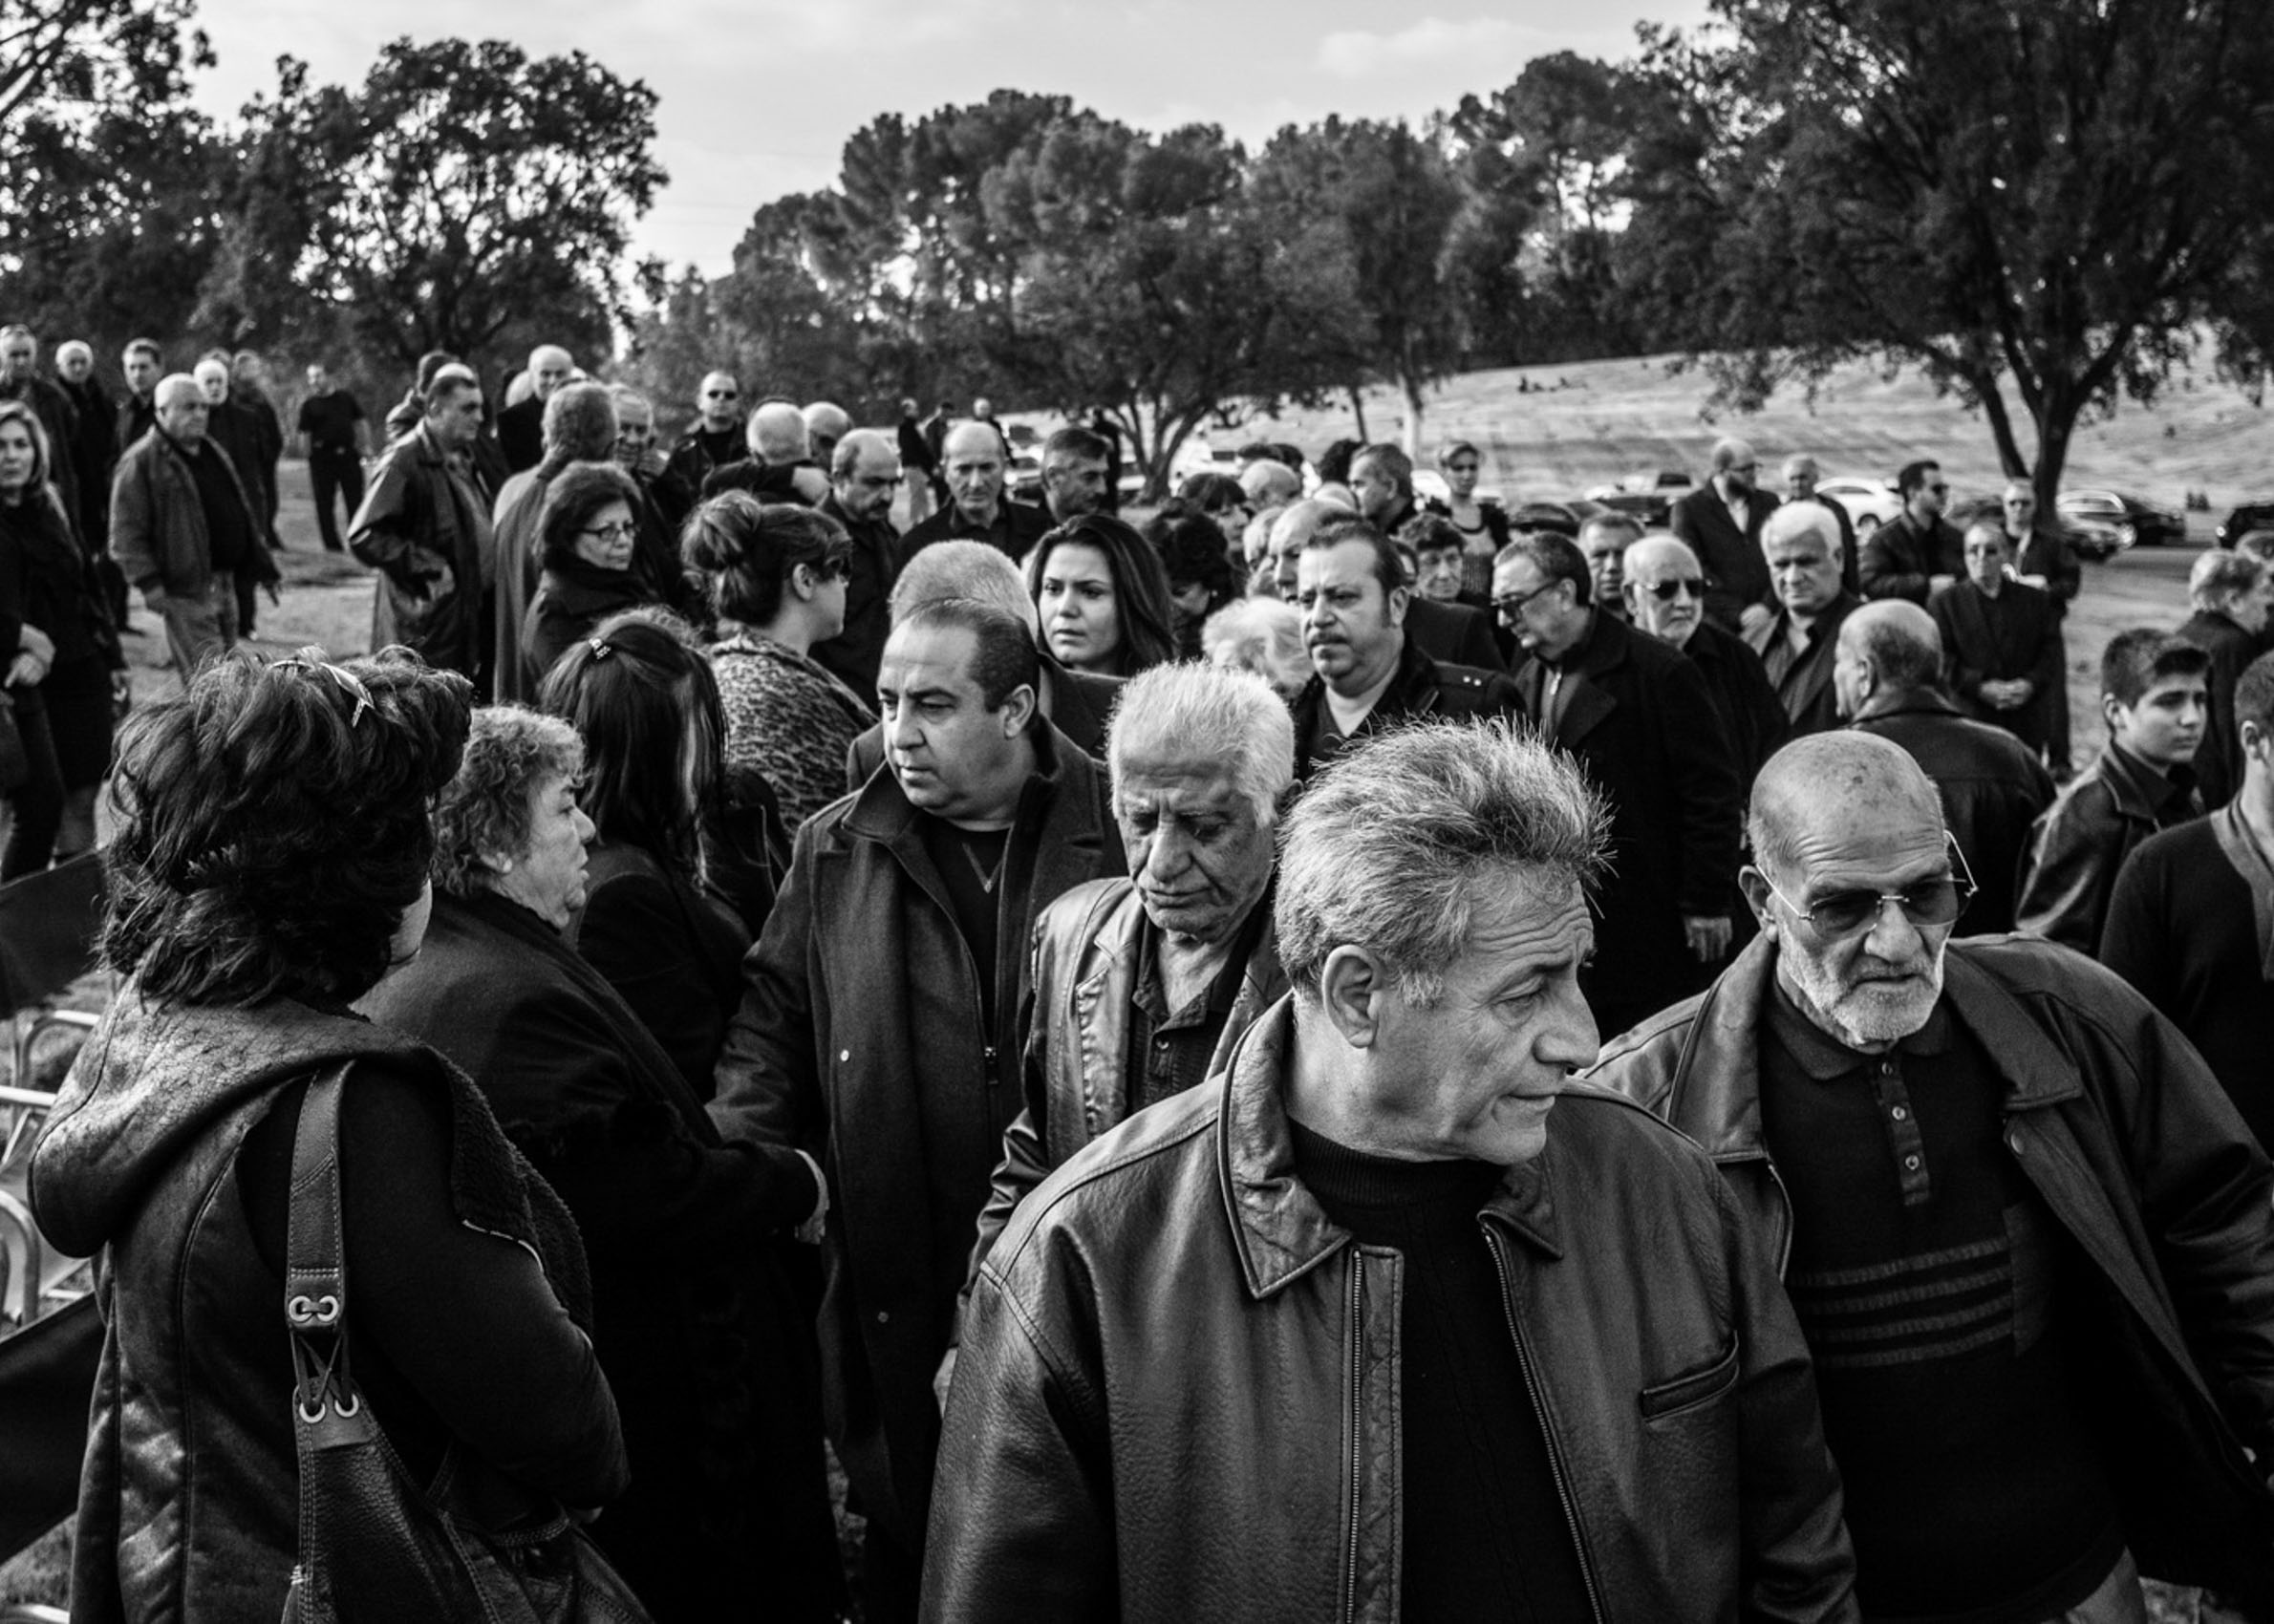 Los Angeles Street Photographer - Funeral at Forest Lawn Cemetery by Ray Kachatorian